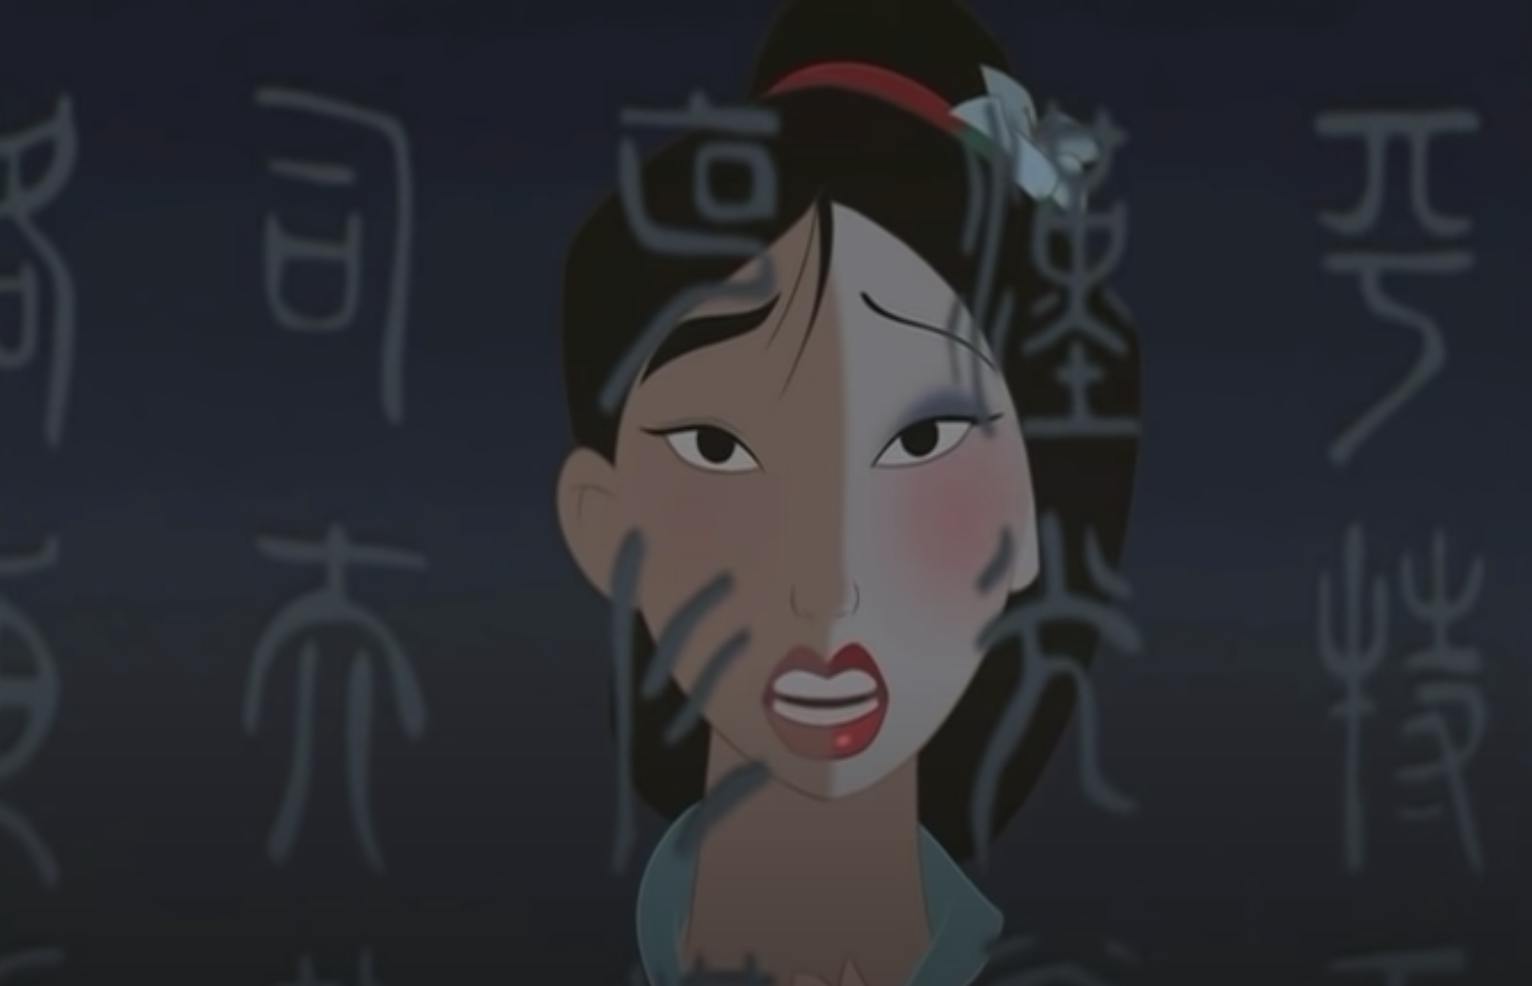 The animated character Mulan wearing makeup on half her face and with Chinese characters superimposed in front of her.